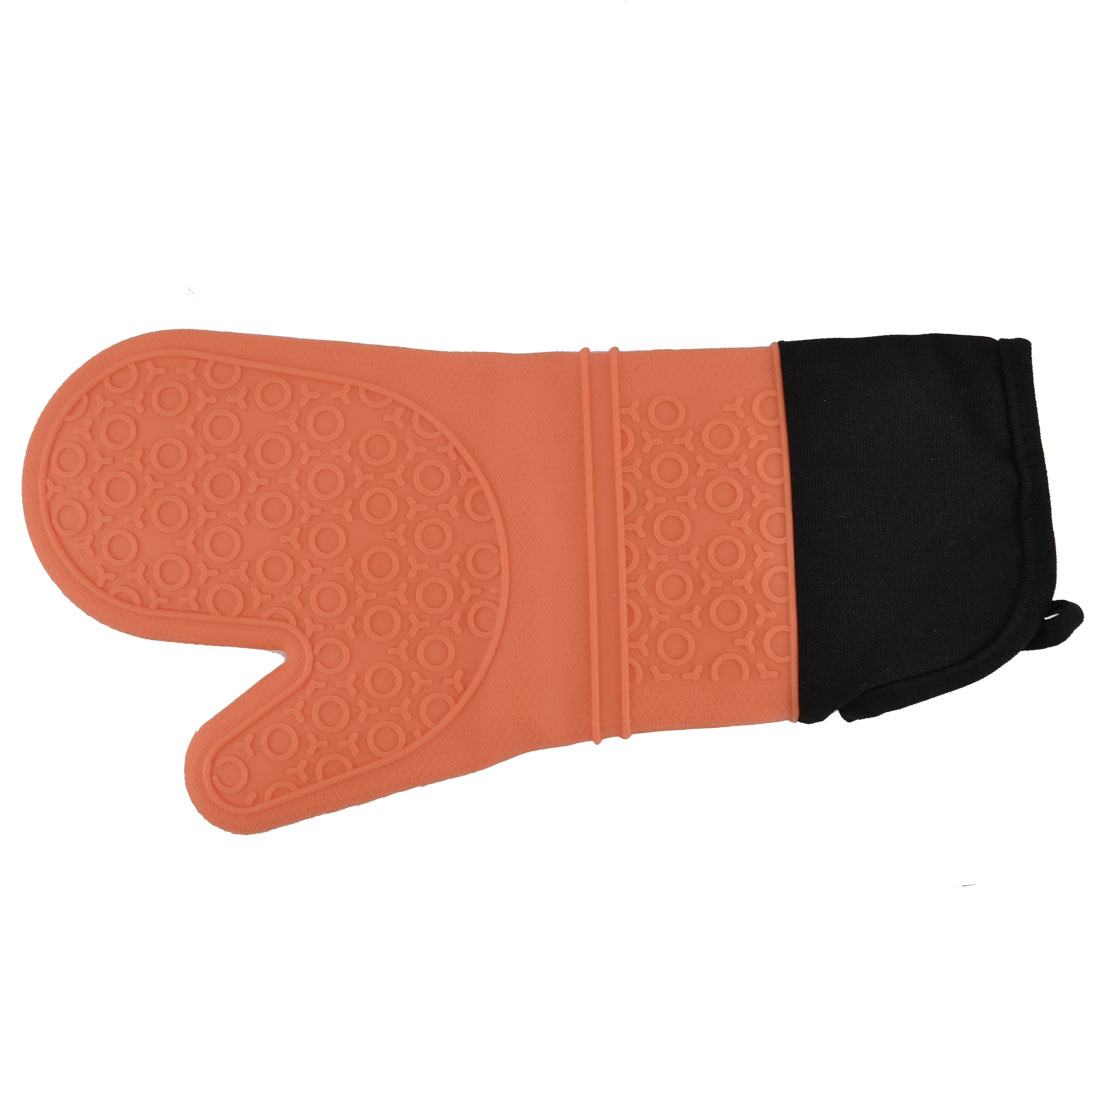 Silicone Kitchen Cooking Baking Heat Resistant Oven Mitt Glove Orange Black